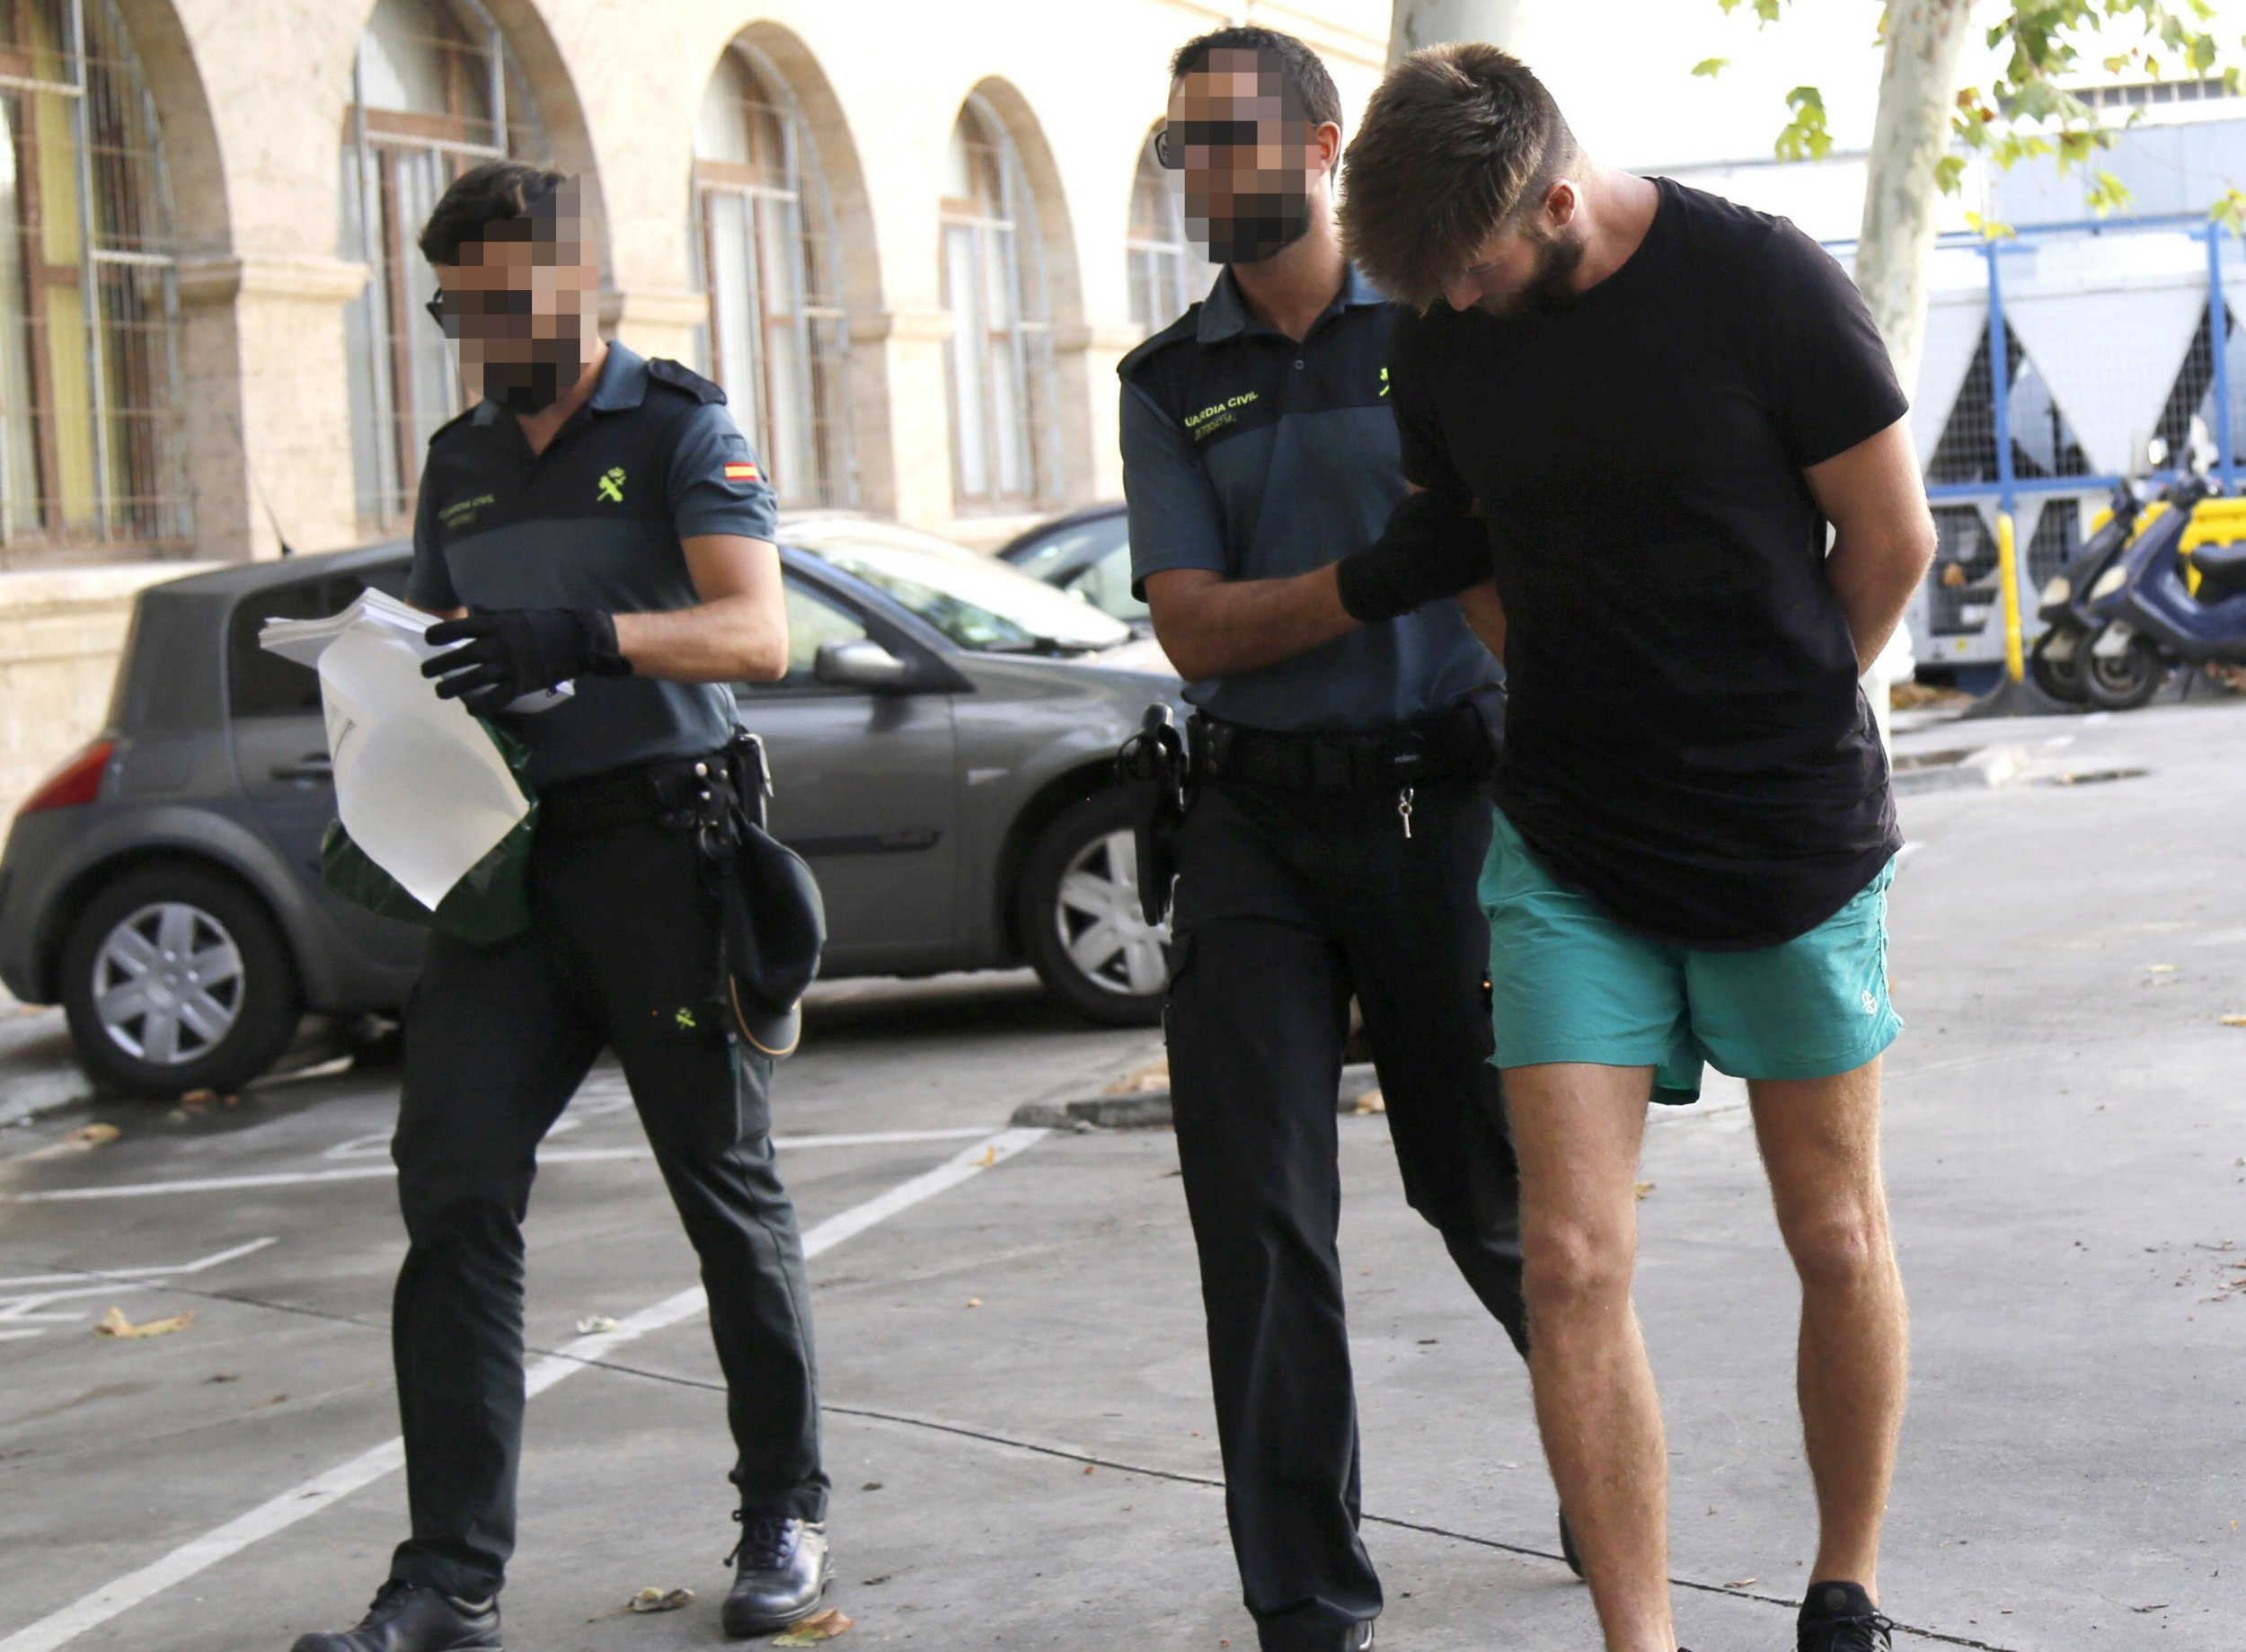 British man 'tied up woman with insulating tape then raped her' in Majorca